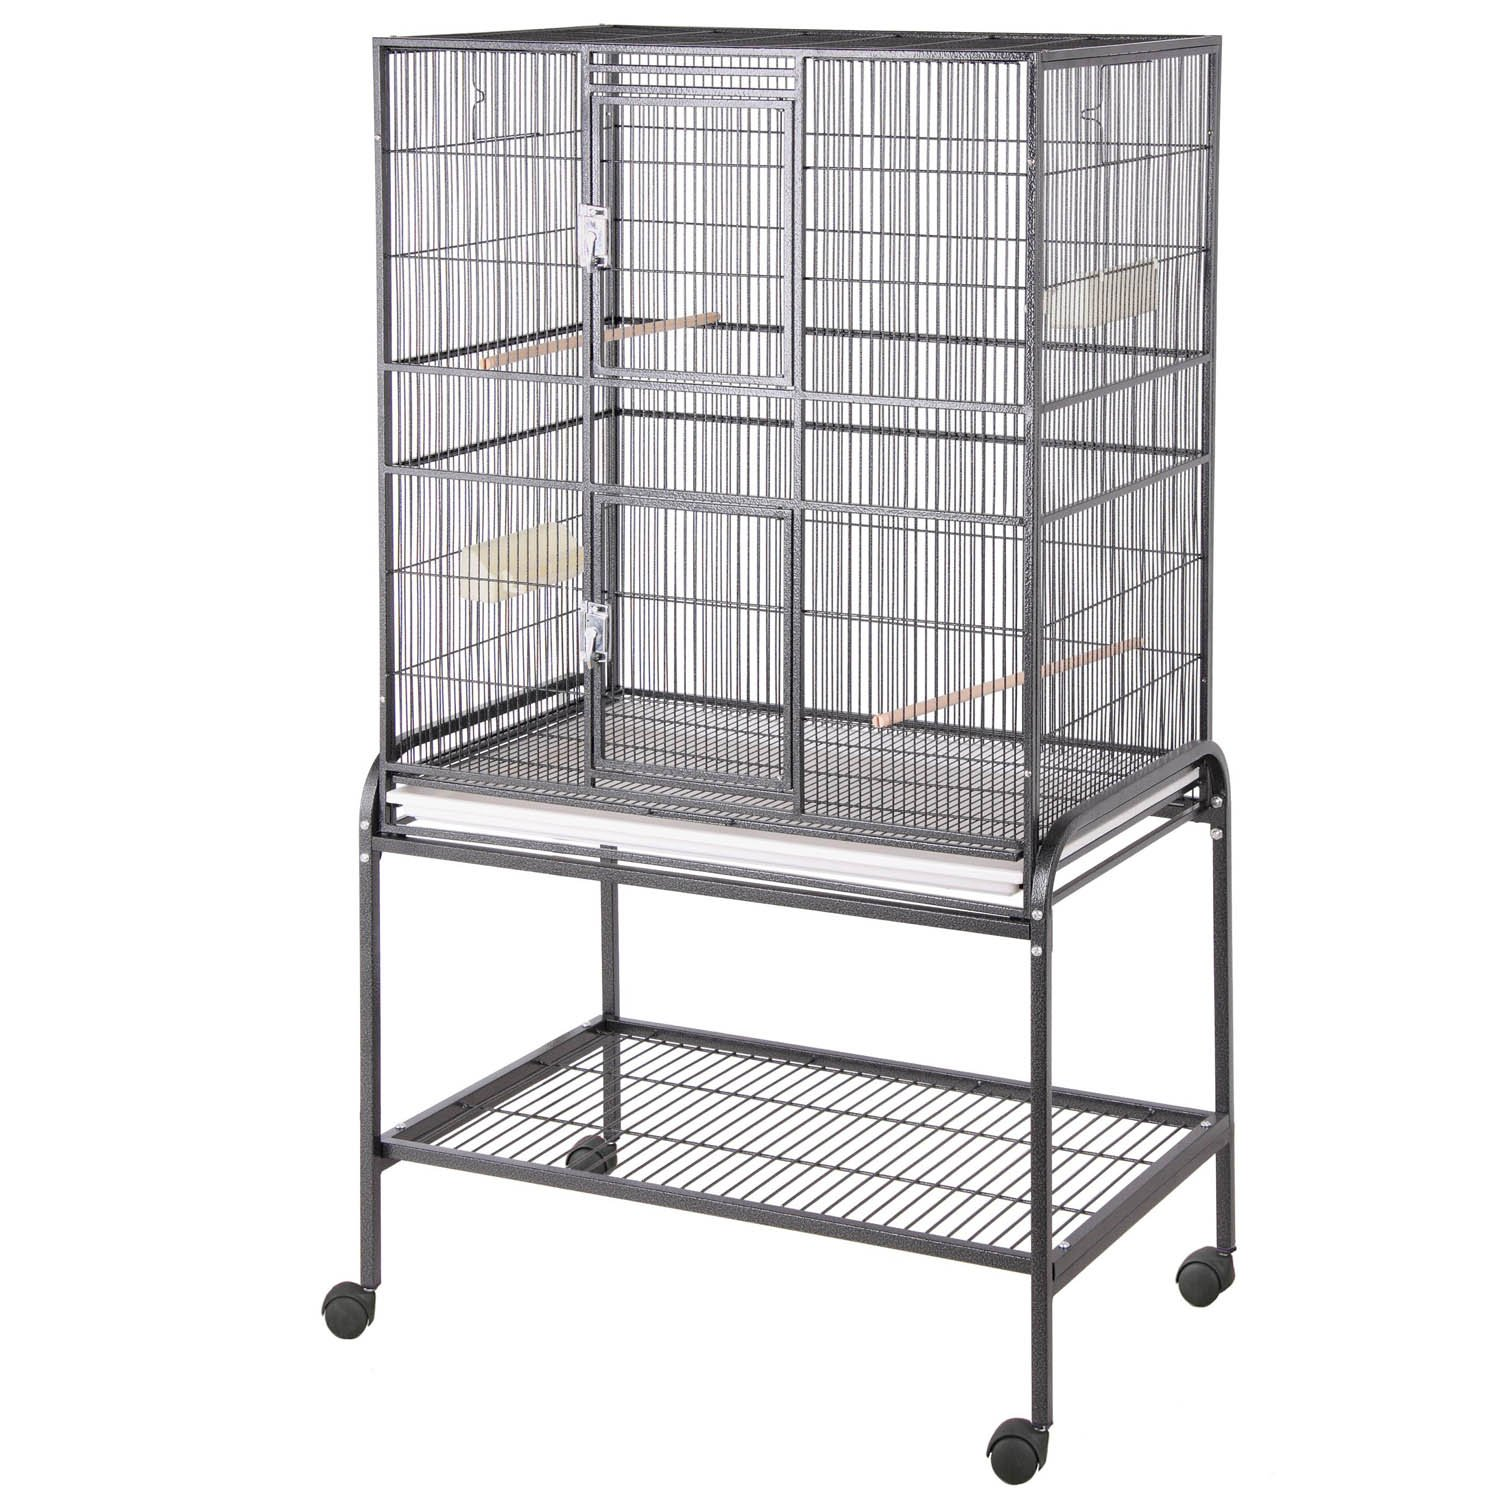 HQ Aviary Flight Cage with Stand in Black | Petco